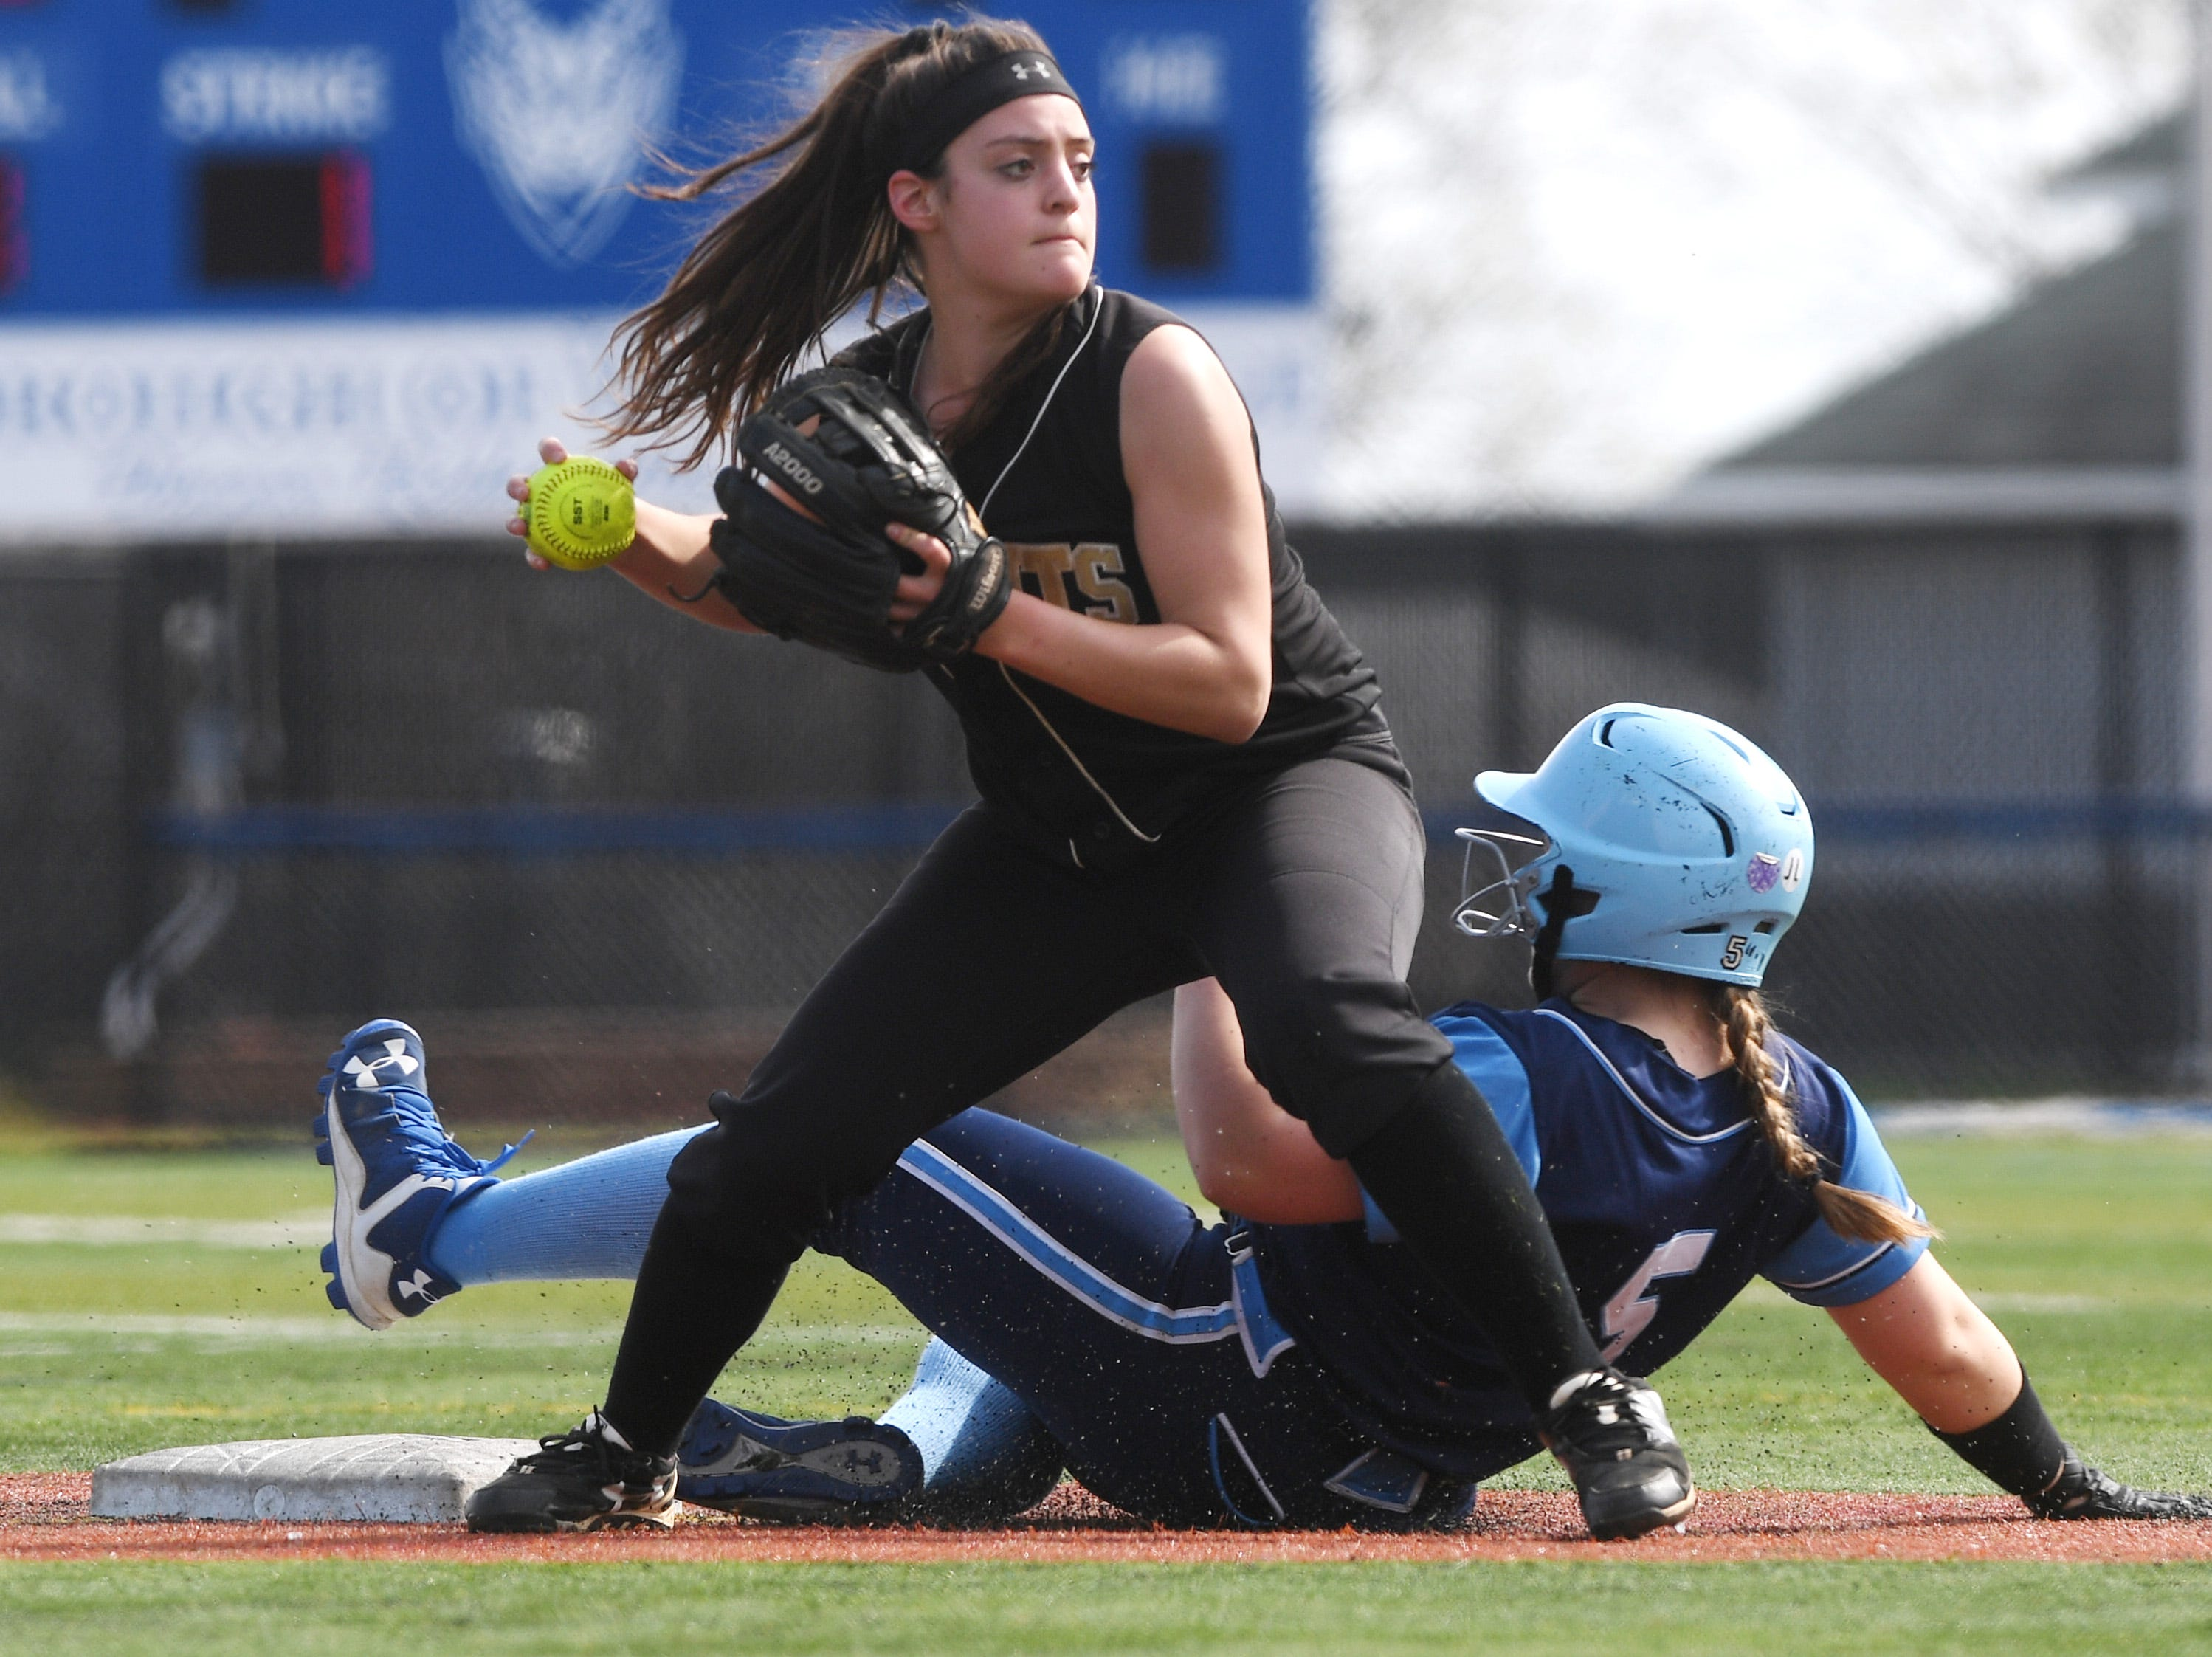 Bergen Tech softball vs. Waldwick in the Donna Ricker Tournament at Wood-Ridge High School on Saturday, April 13, 2019. BT #8 Gianna Sarlo gets W #5 Kacie Centineo out at second.